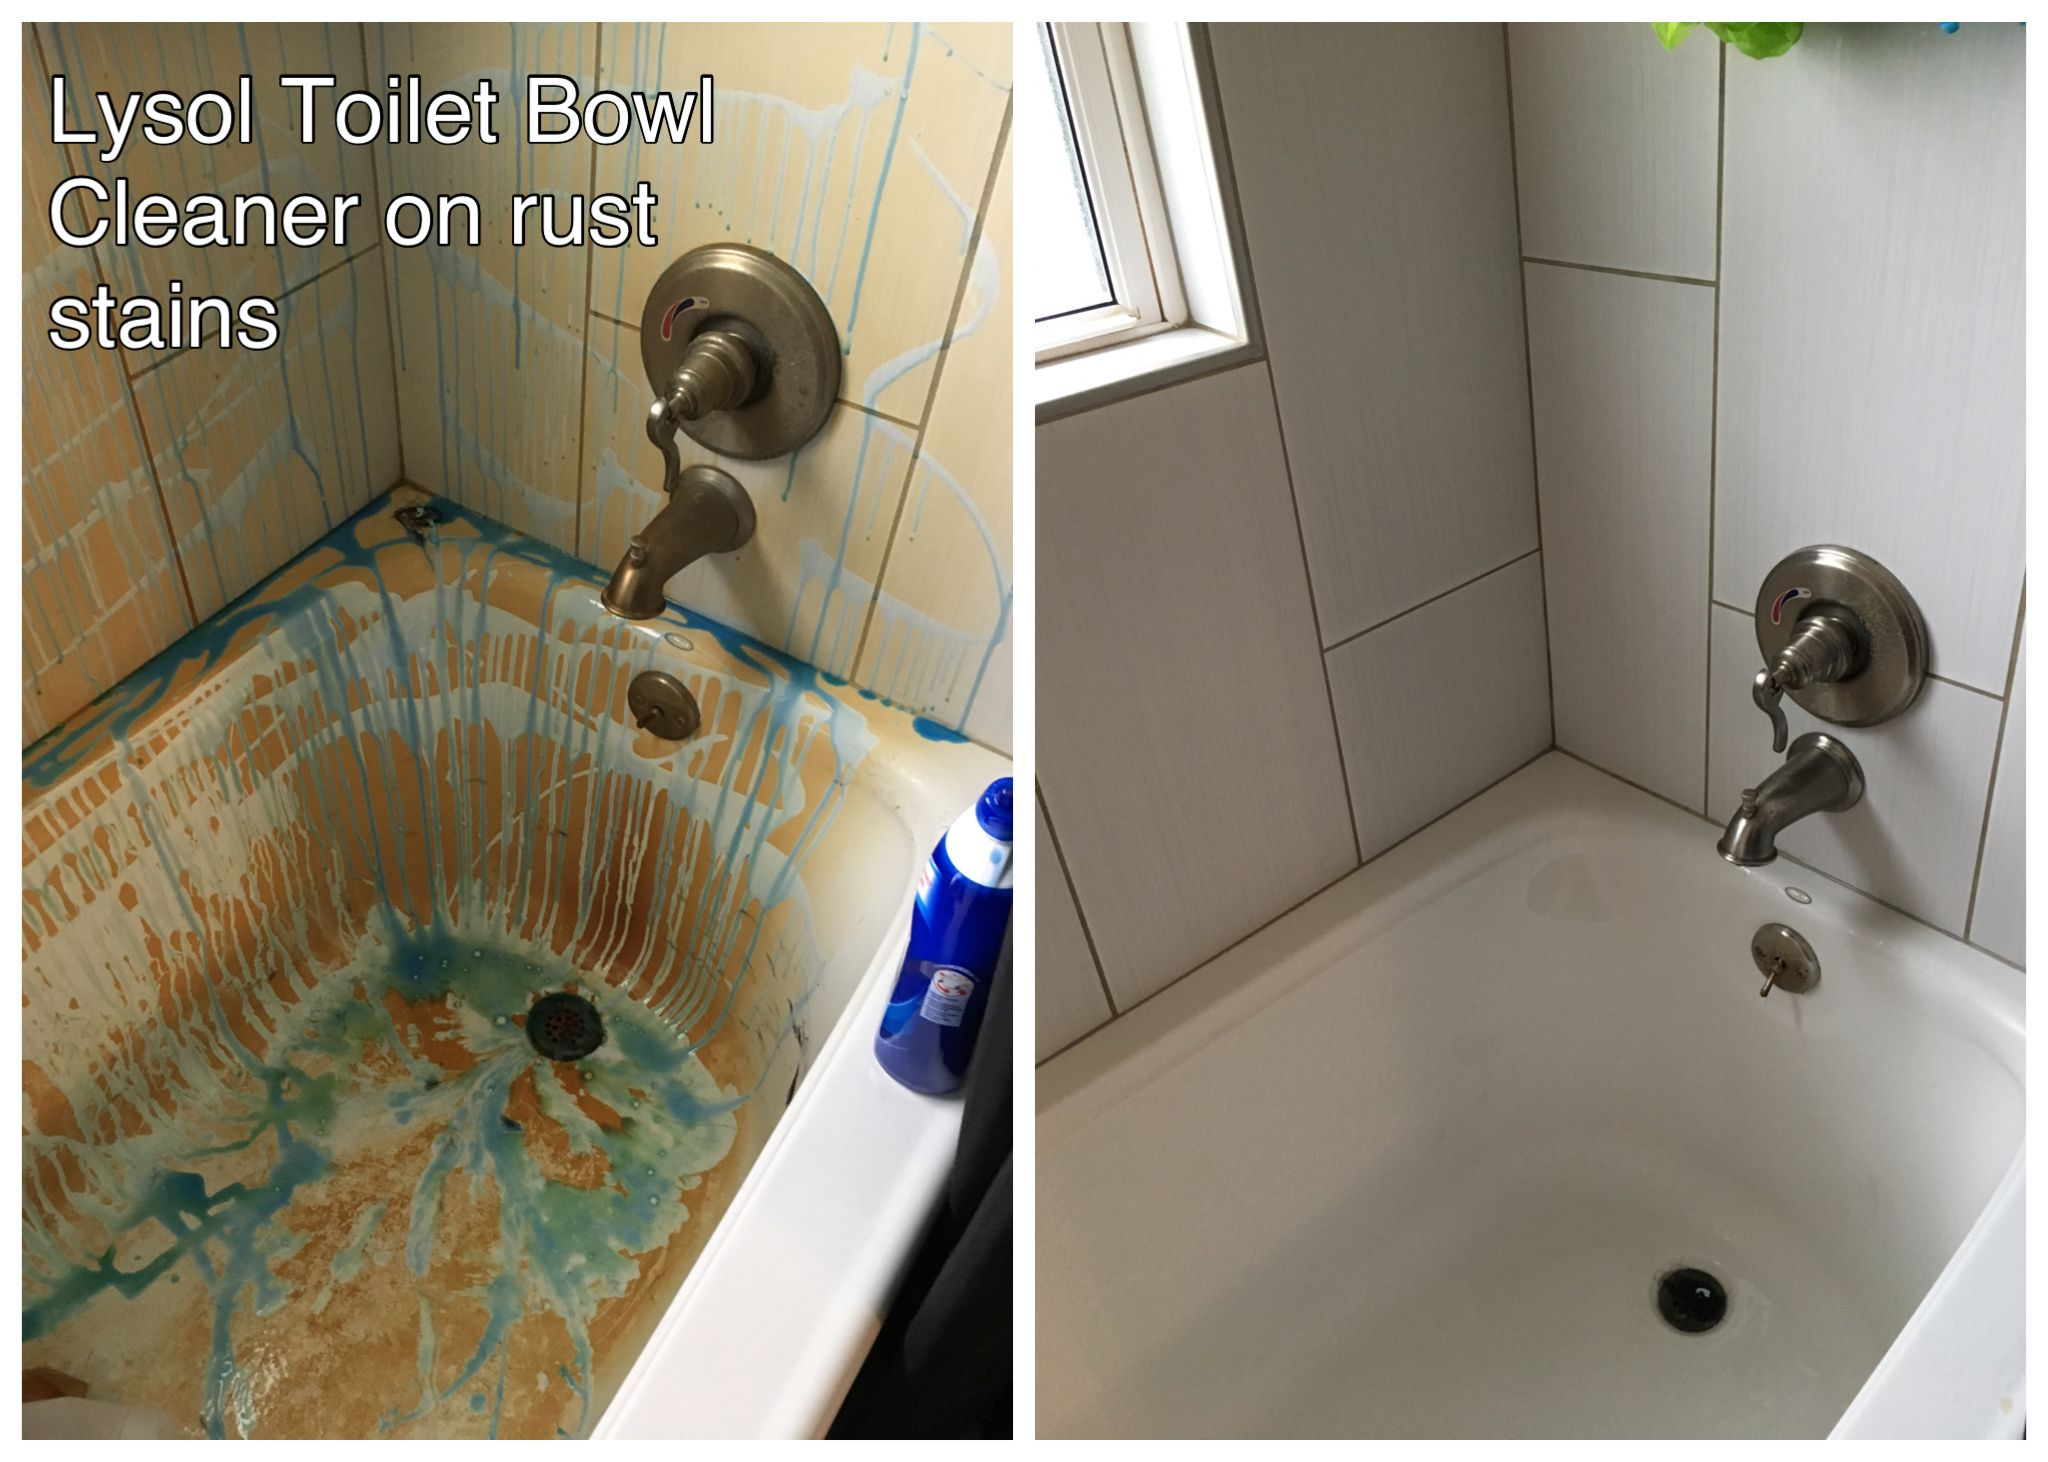 Lysol Toilet Bowl Cleaner works amazingly on hard water rust stains ...